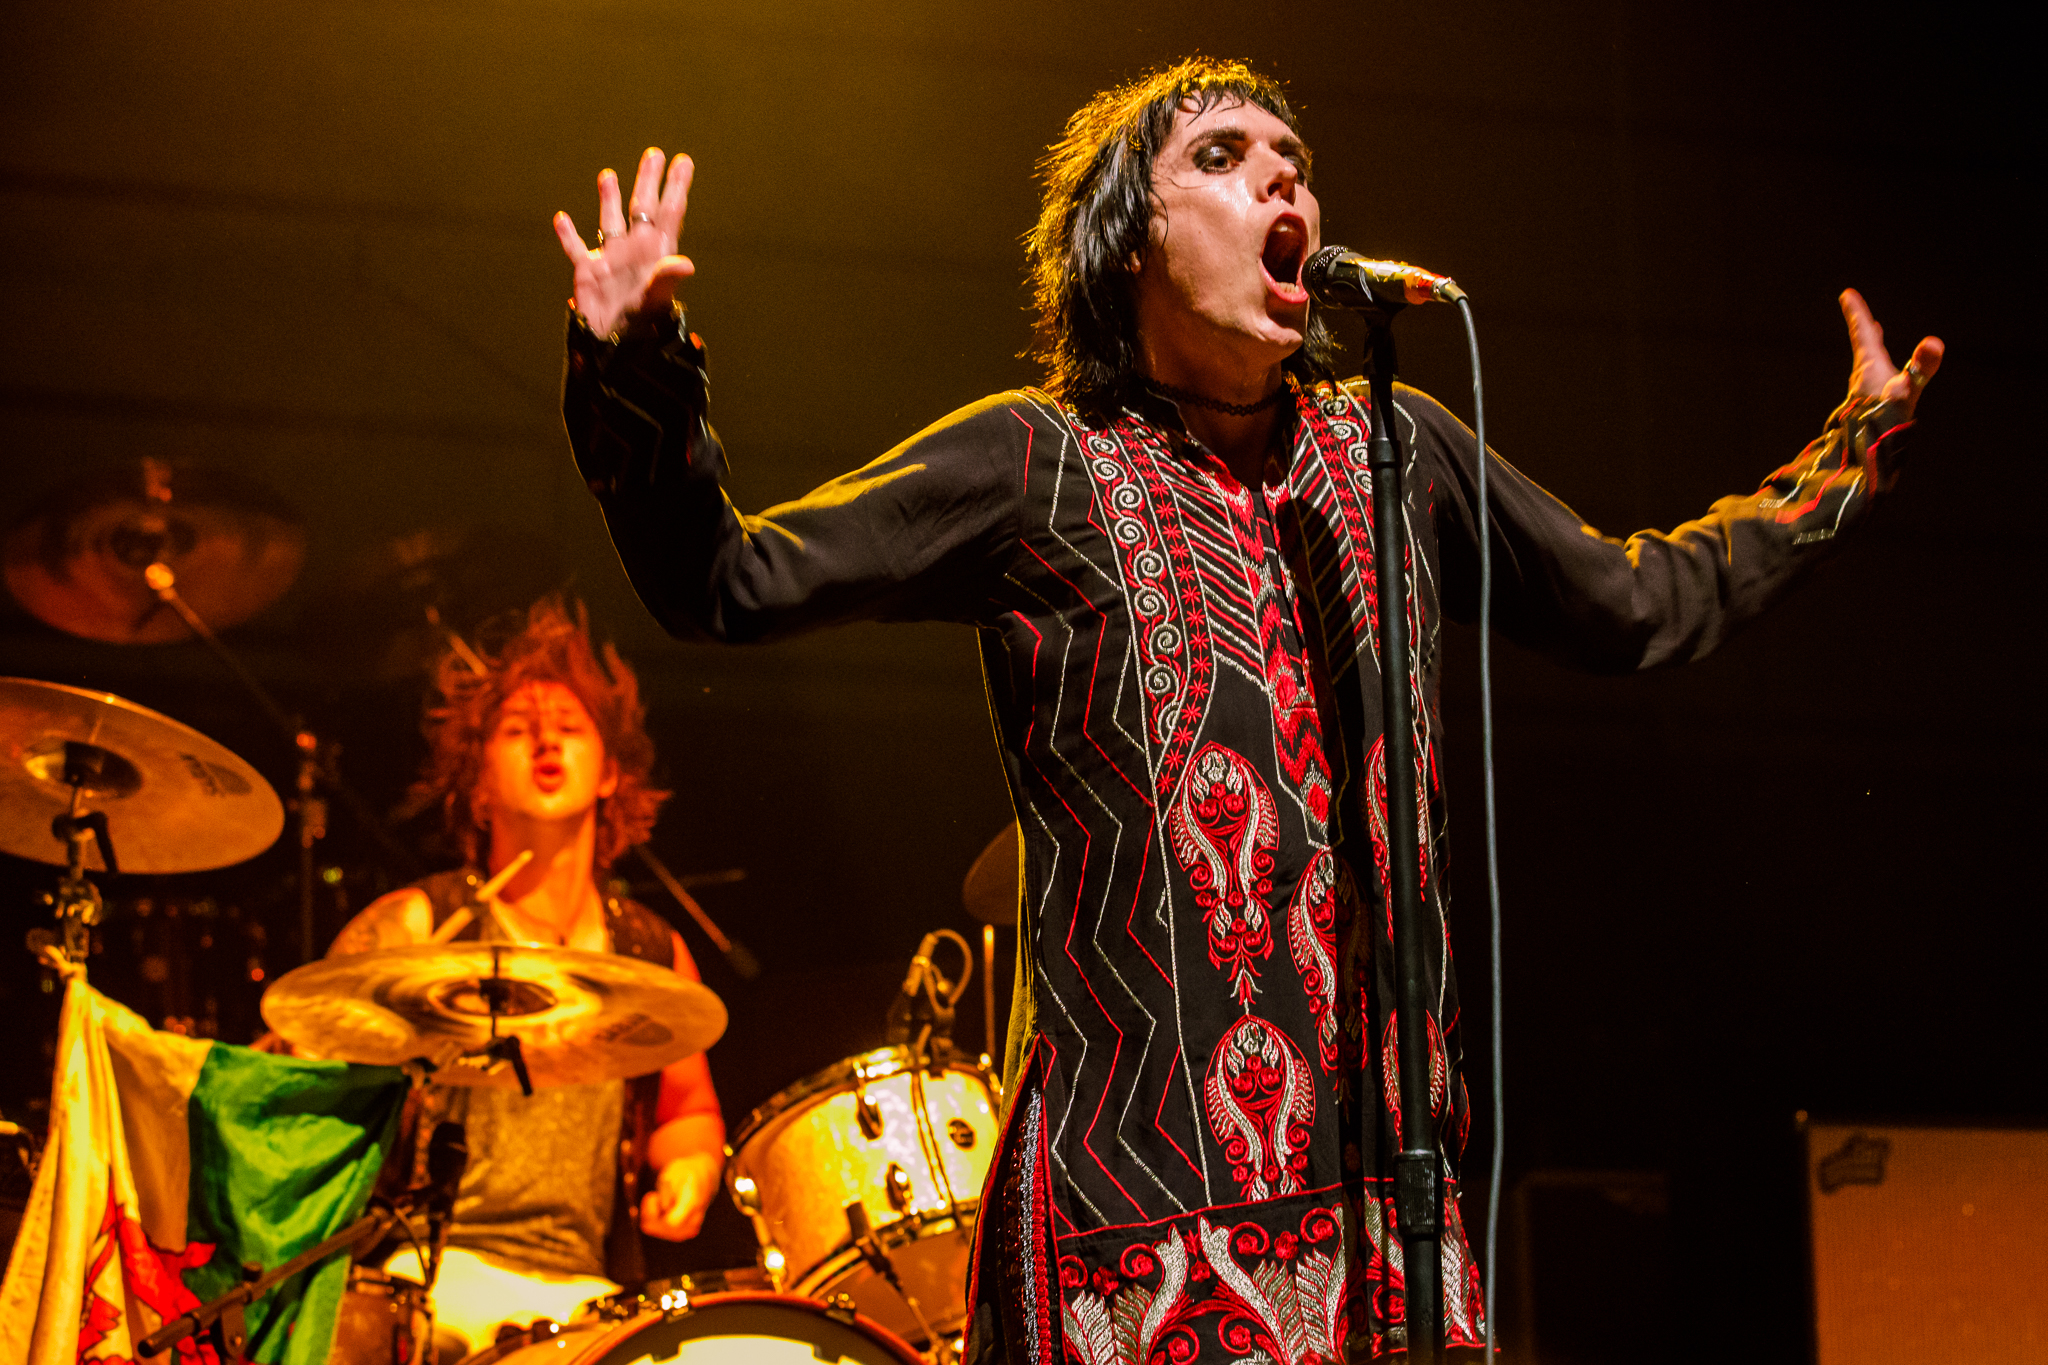 The Struts performing at The Anthem in Washington, DC - 10/12/2017 (photo by Matt Condon / @ arcane93)